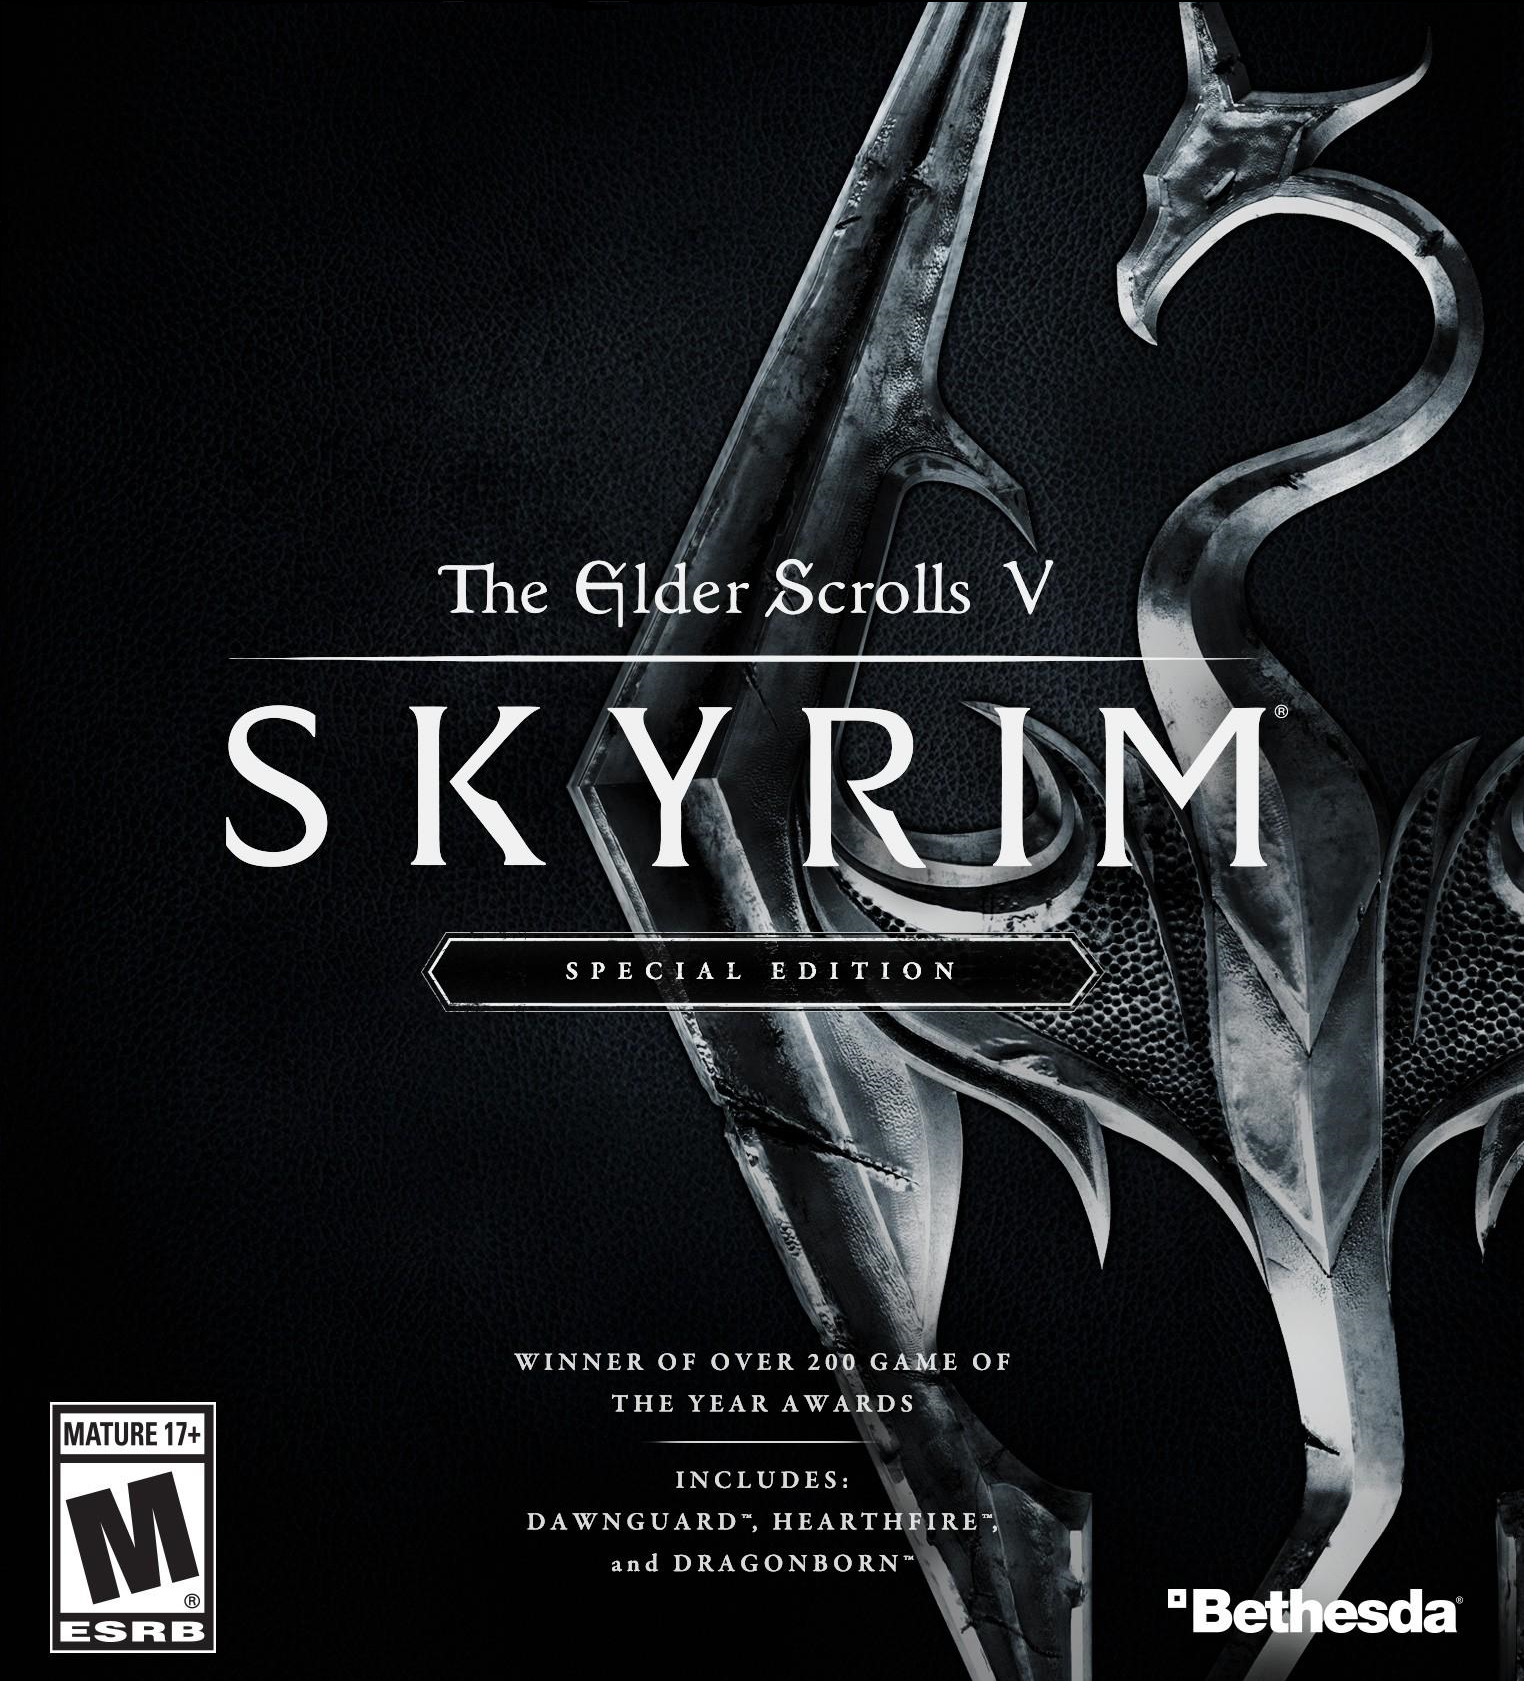 The Elder Scrolls V: Skyrim Special Edition | Elder Scrolls